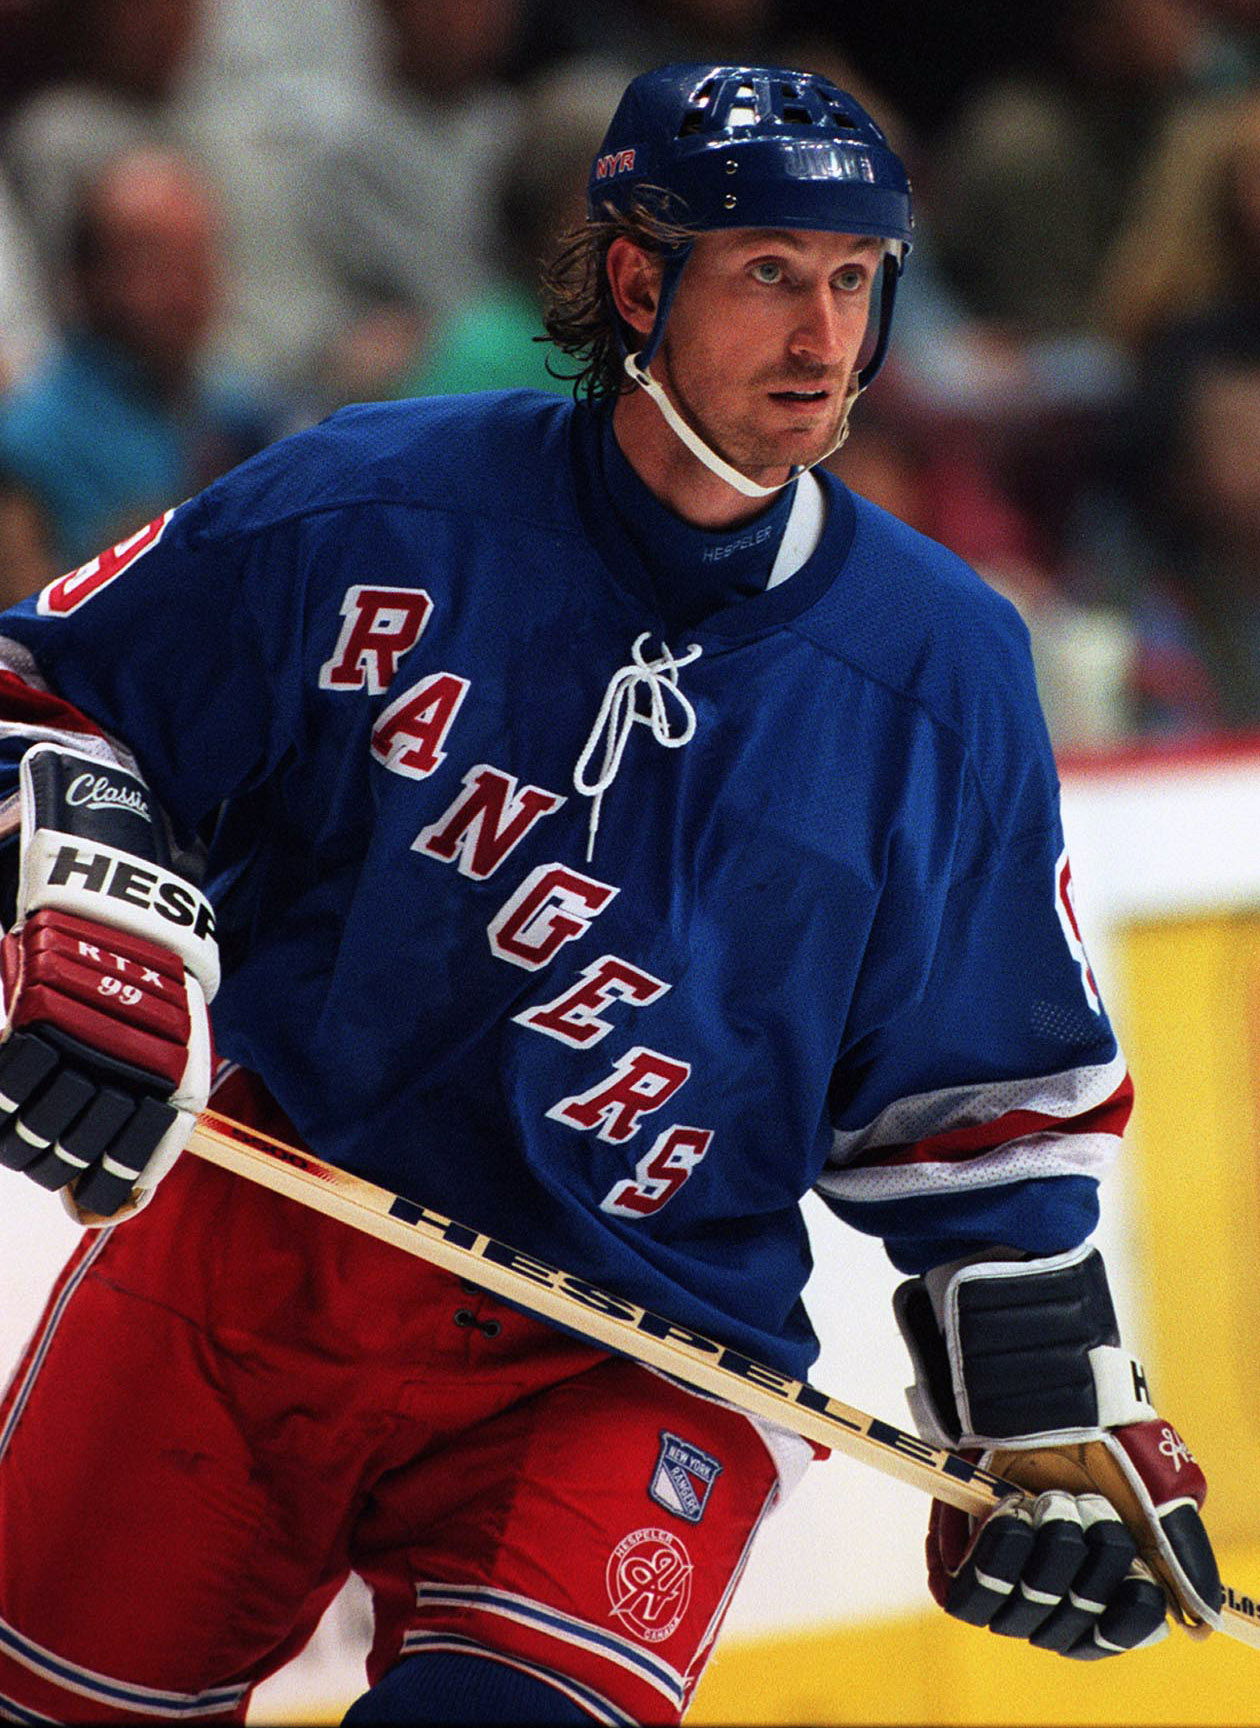 an analysis of the great wayne gretzky Wayne gretzky simply shrugged off the hyperbole and said he followed instinct by anticipating where the puck was going and foreshadowing where the play might take him.